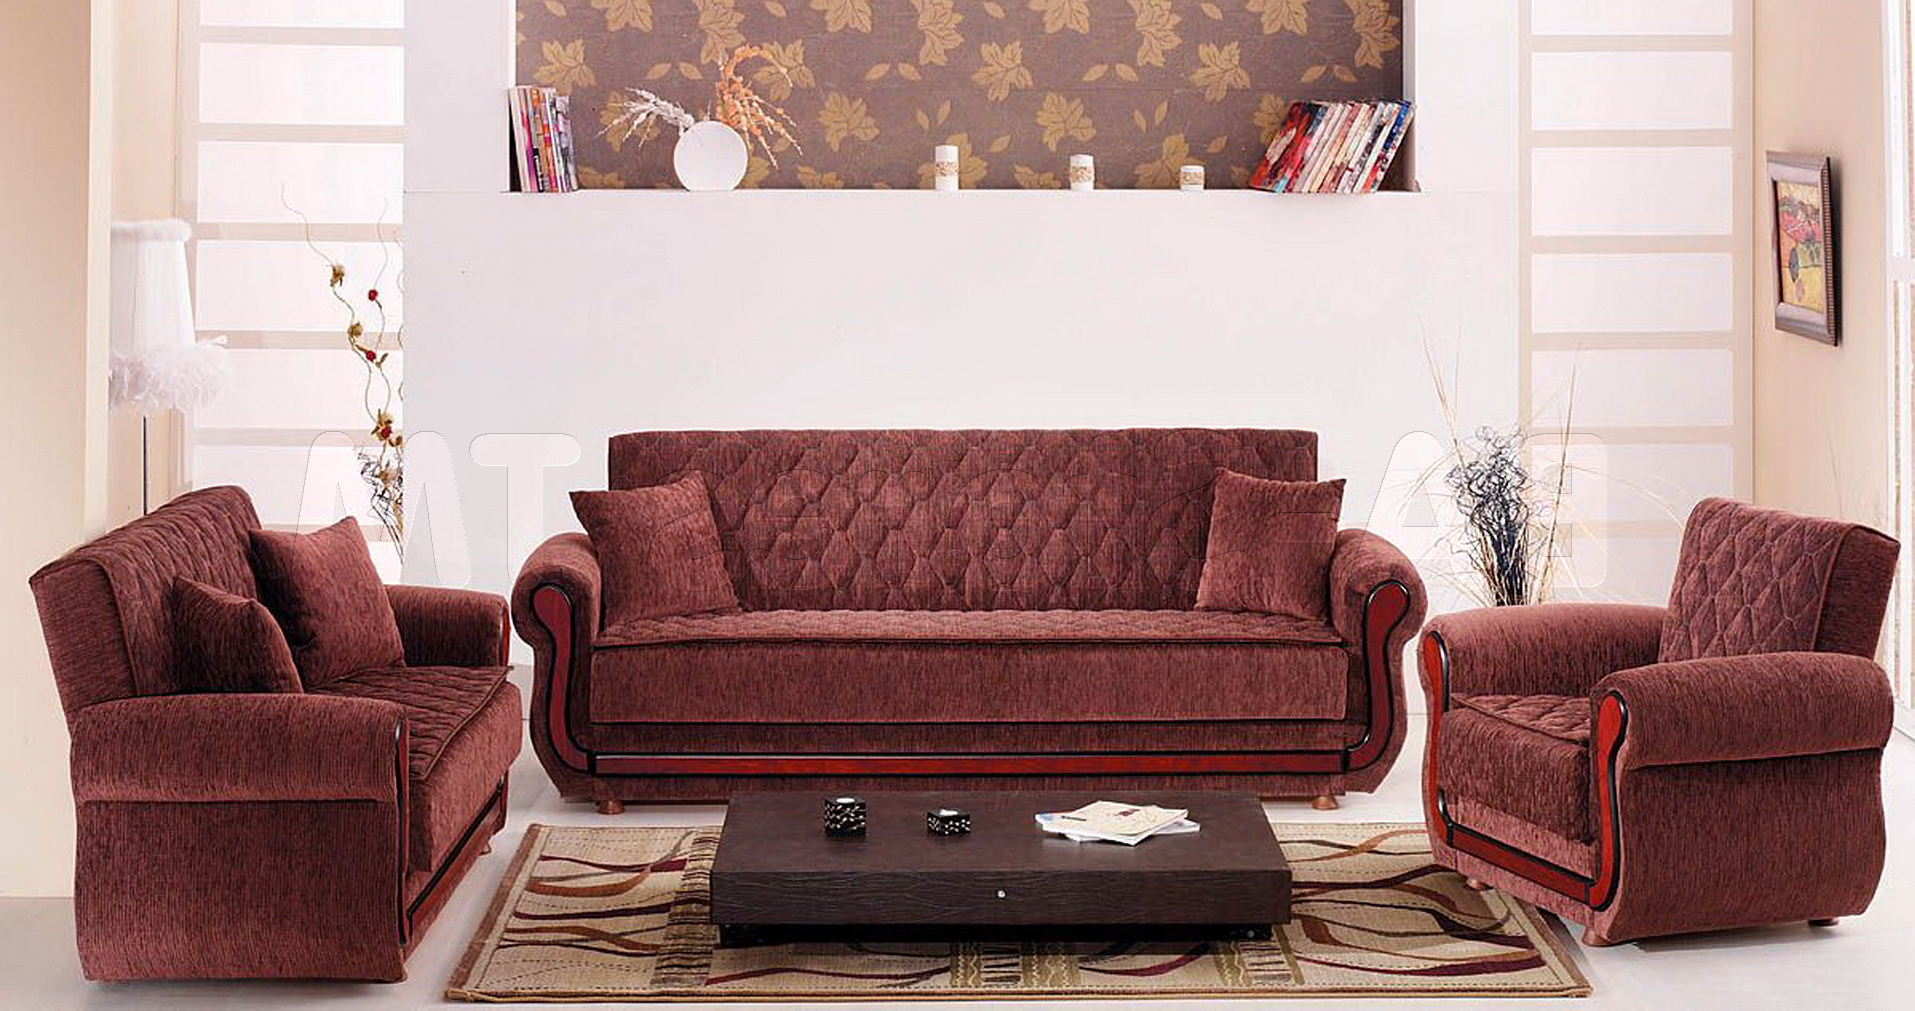 2019 Beautiful Sofa And Chair Set 20 For Your Modern Sofa Ideas With Sofa With Sofa And Chair Set (View 1 of 20)